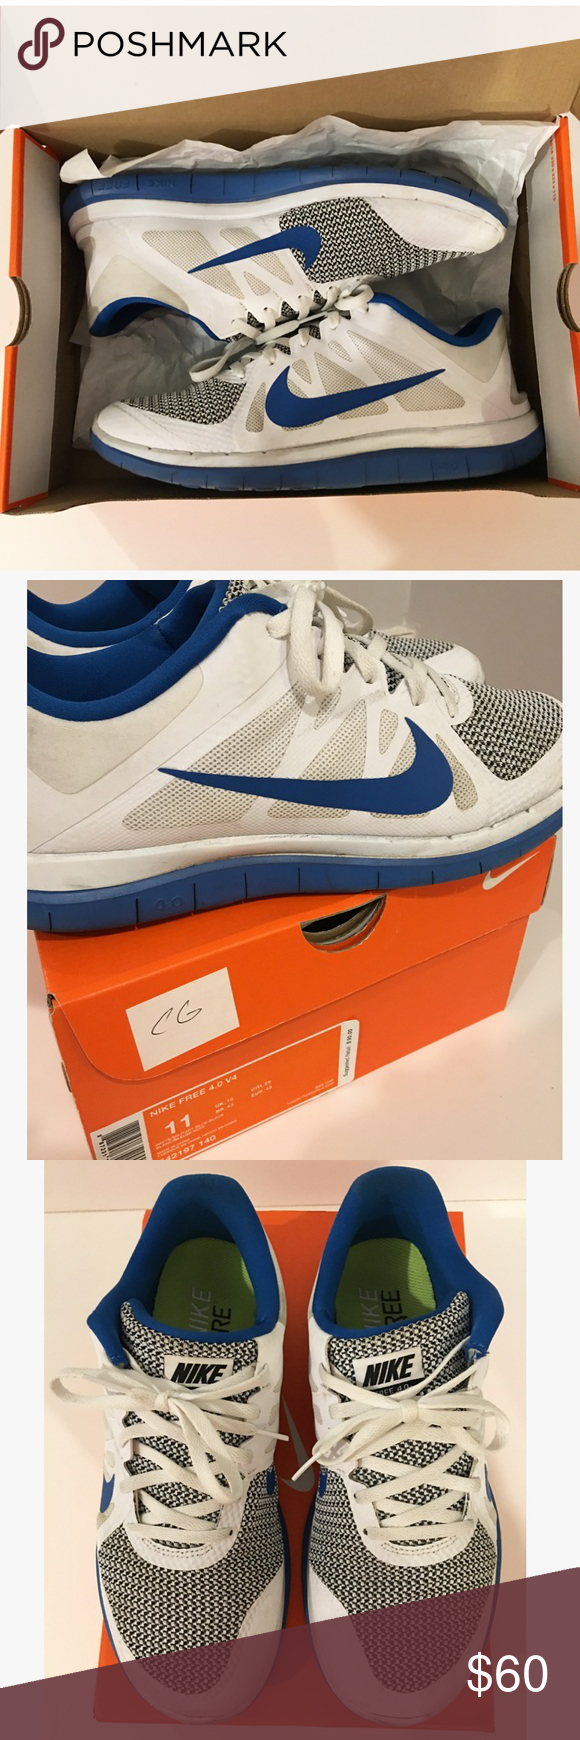 Nike Free 4.0 Men's Nike Free 4.0. Good condition. These running sneakers are extremely comfortable and have had minimal wear. Complete with original box where they have been stored inside. Nike Shoes Sneakers